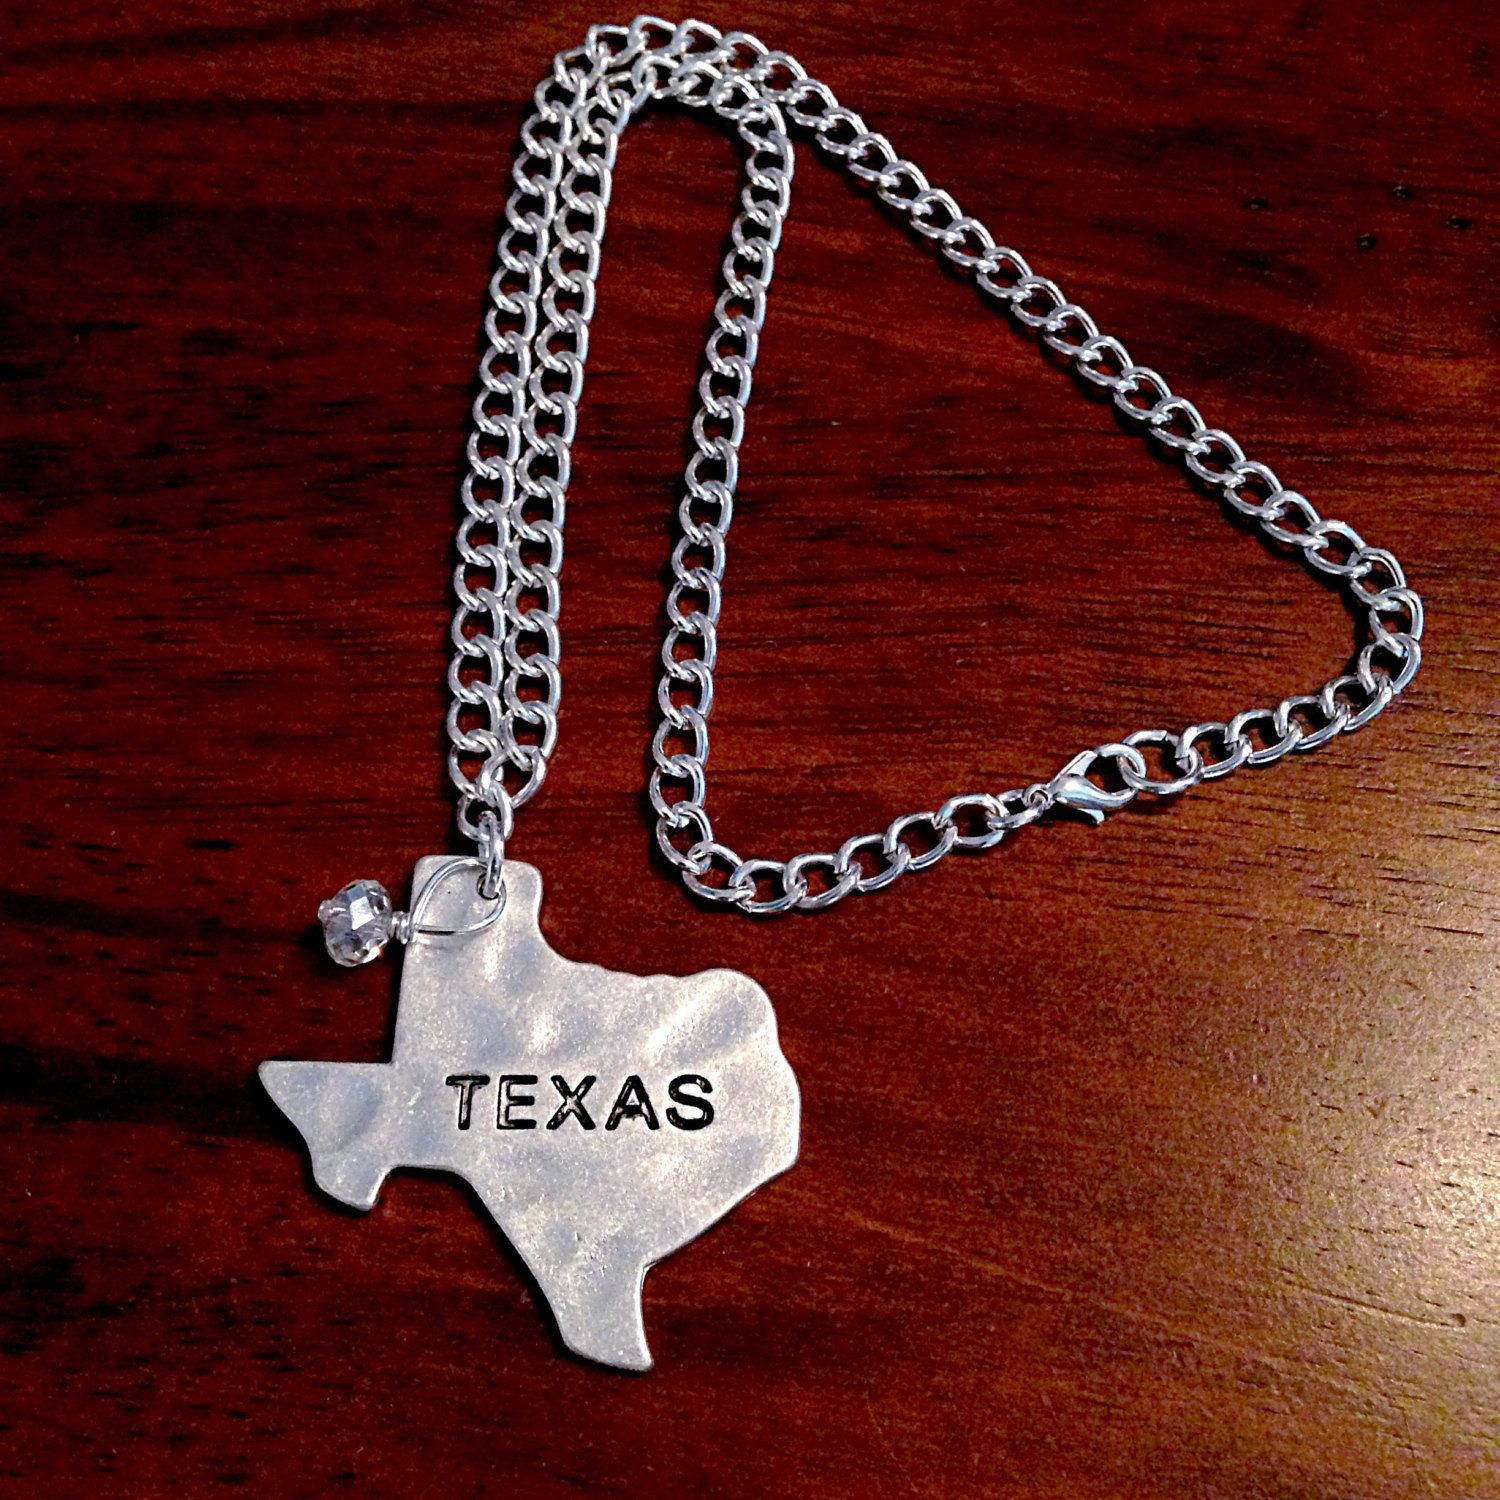 Necklace texas necklace silver texas pendant necklace cowgirl necklace texas necklace silver texas pendant necklace cowgirl necklace texas jewelry mozeypictures Choice Image